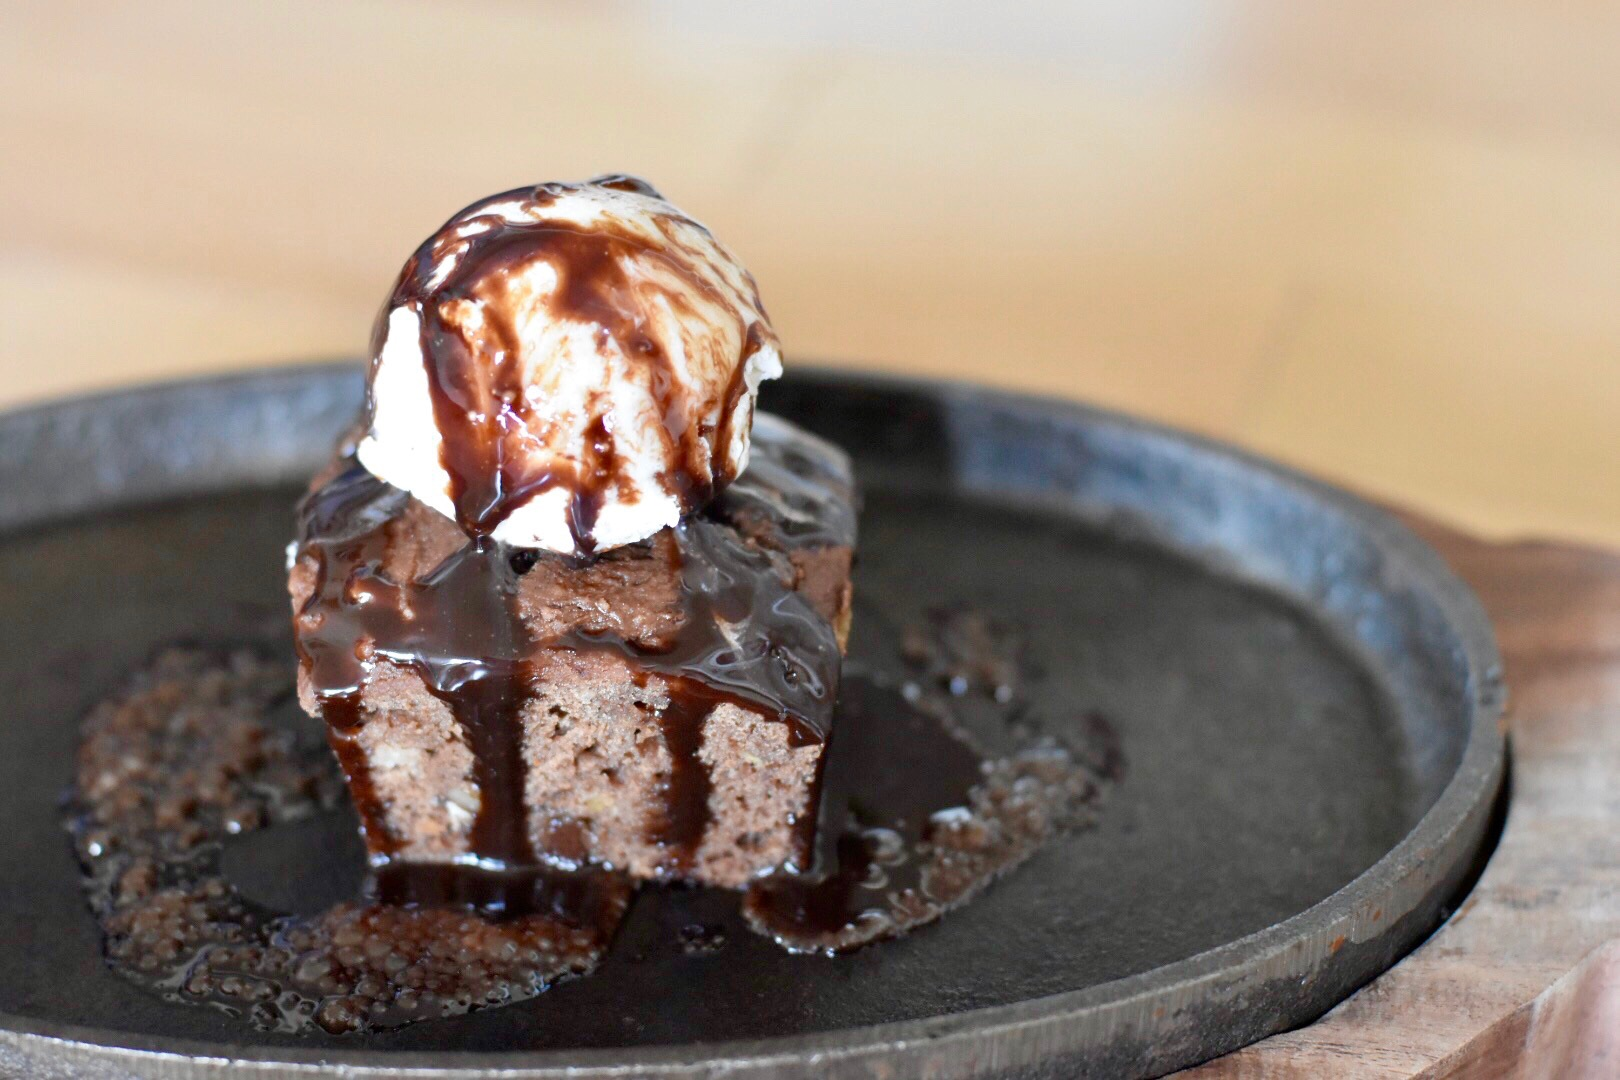 Sizzling Brownie with ice cream / Weight Watchers Brownie